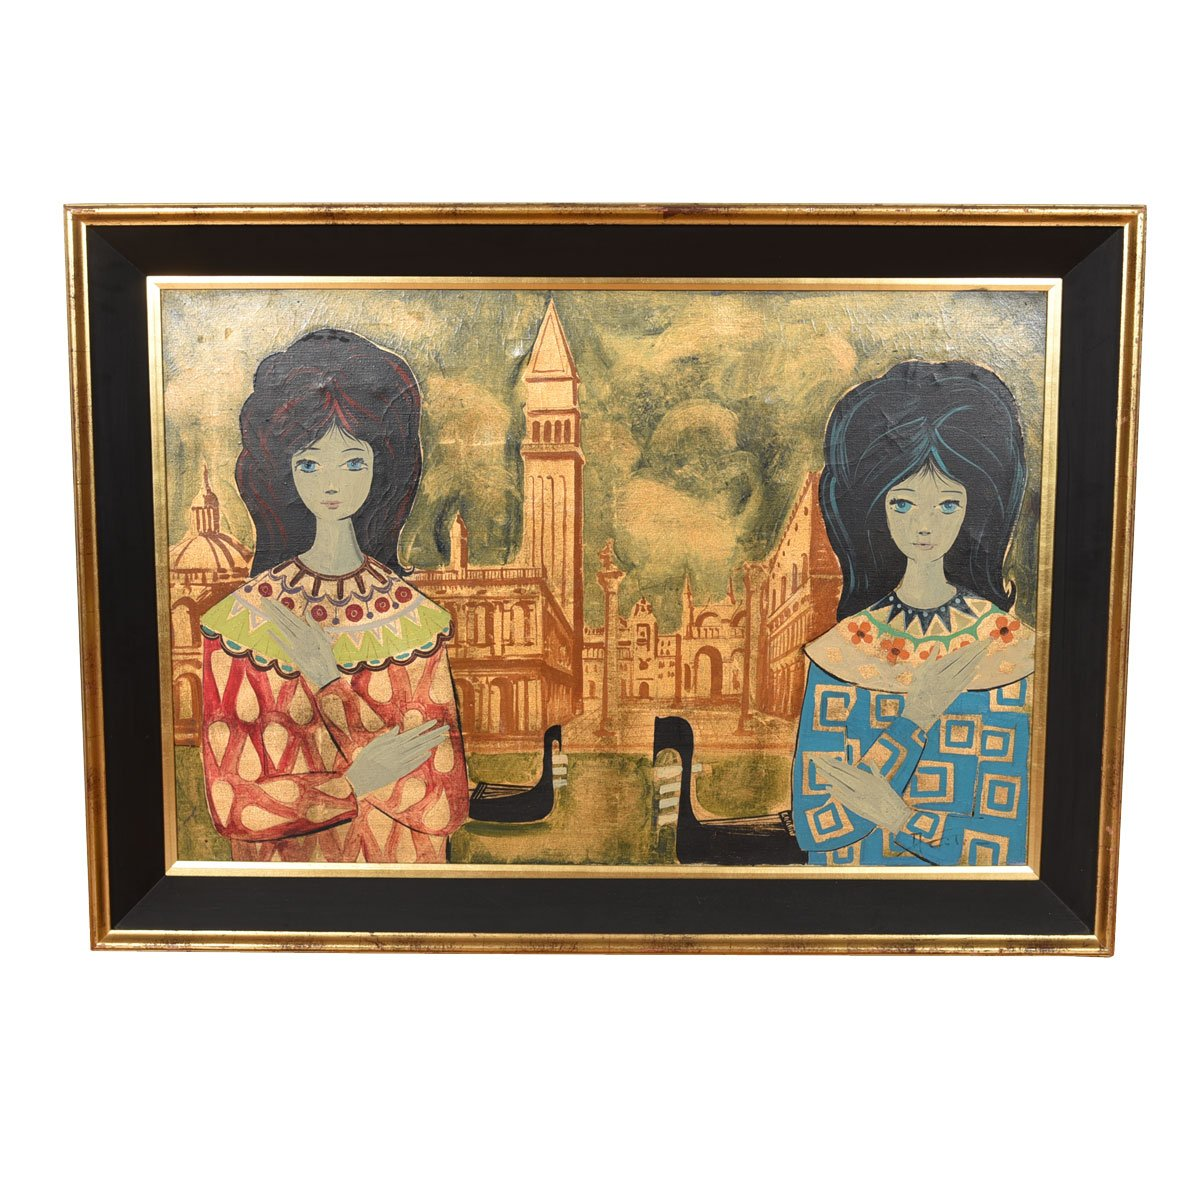 MCM Artwork Featuring Two Women in Front of St. Mark's, Venice